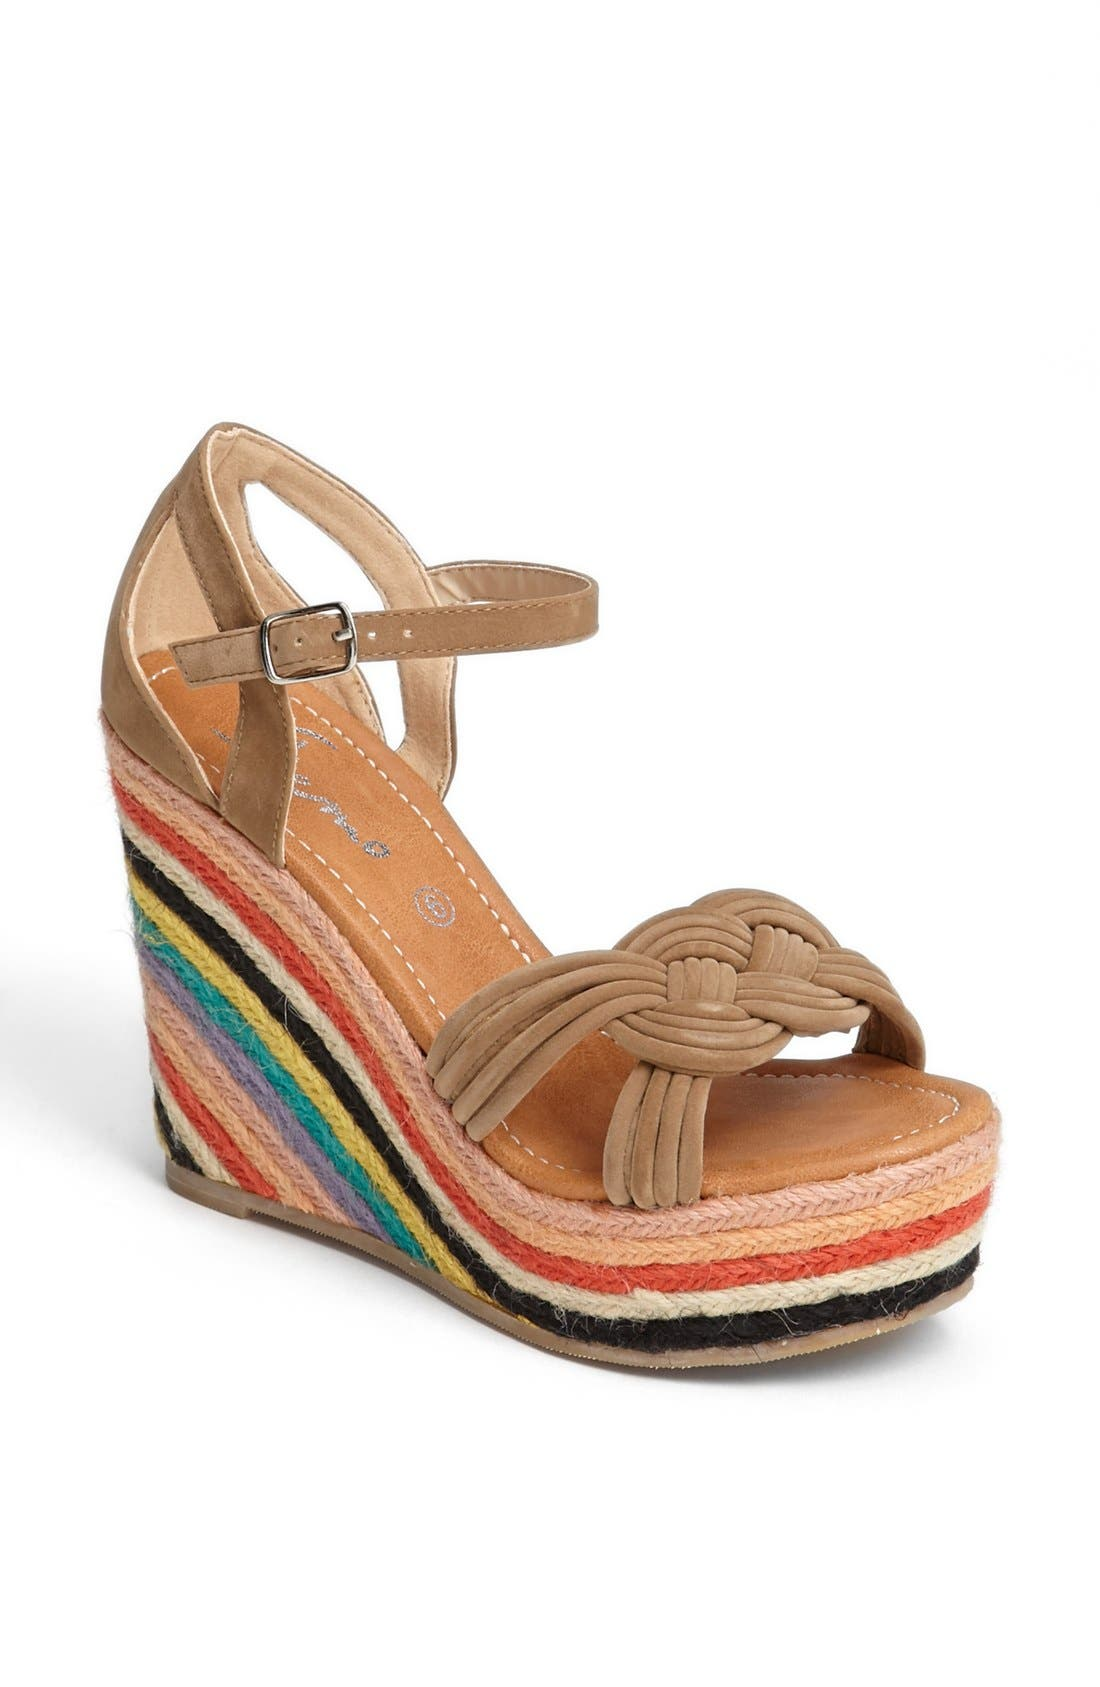 Alternate Image 1 Selected - Skemo 'Bow' Wedge Sandal